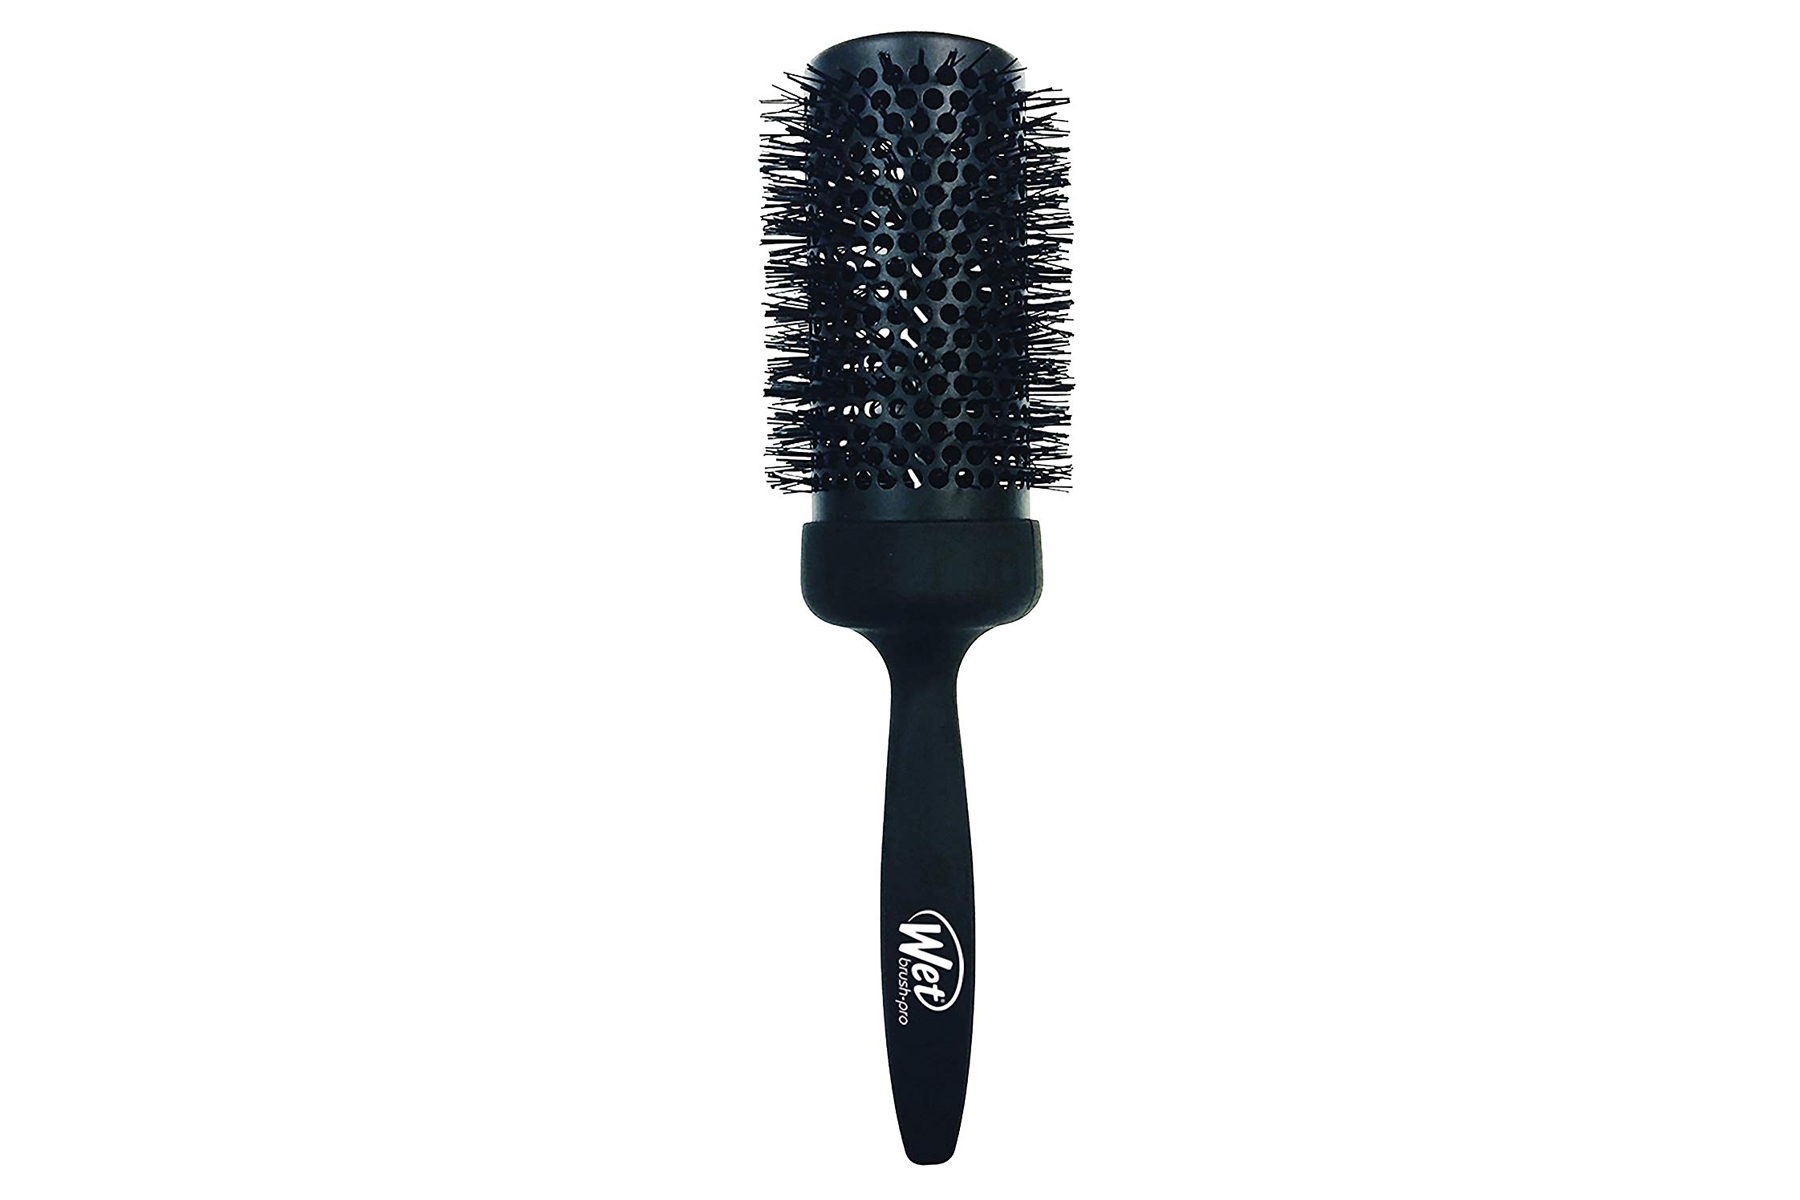 Best Hair Brushes For Thinning Hair For Blowouts